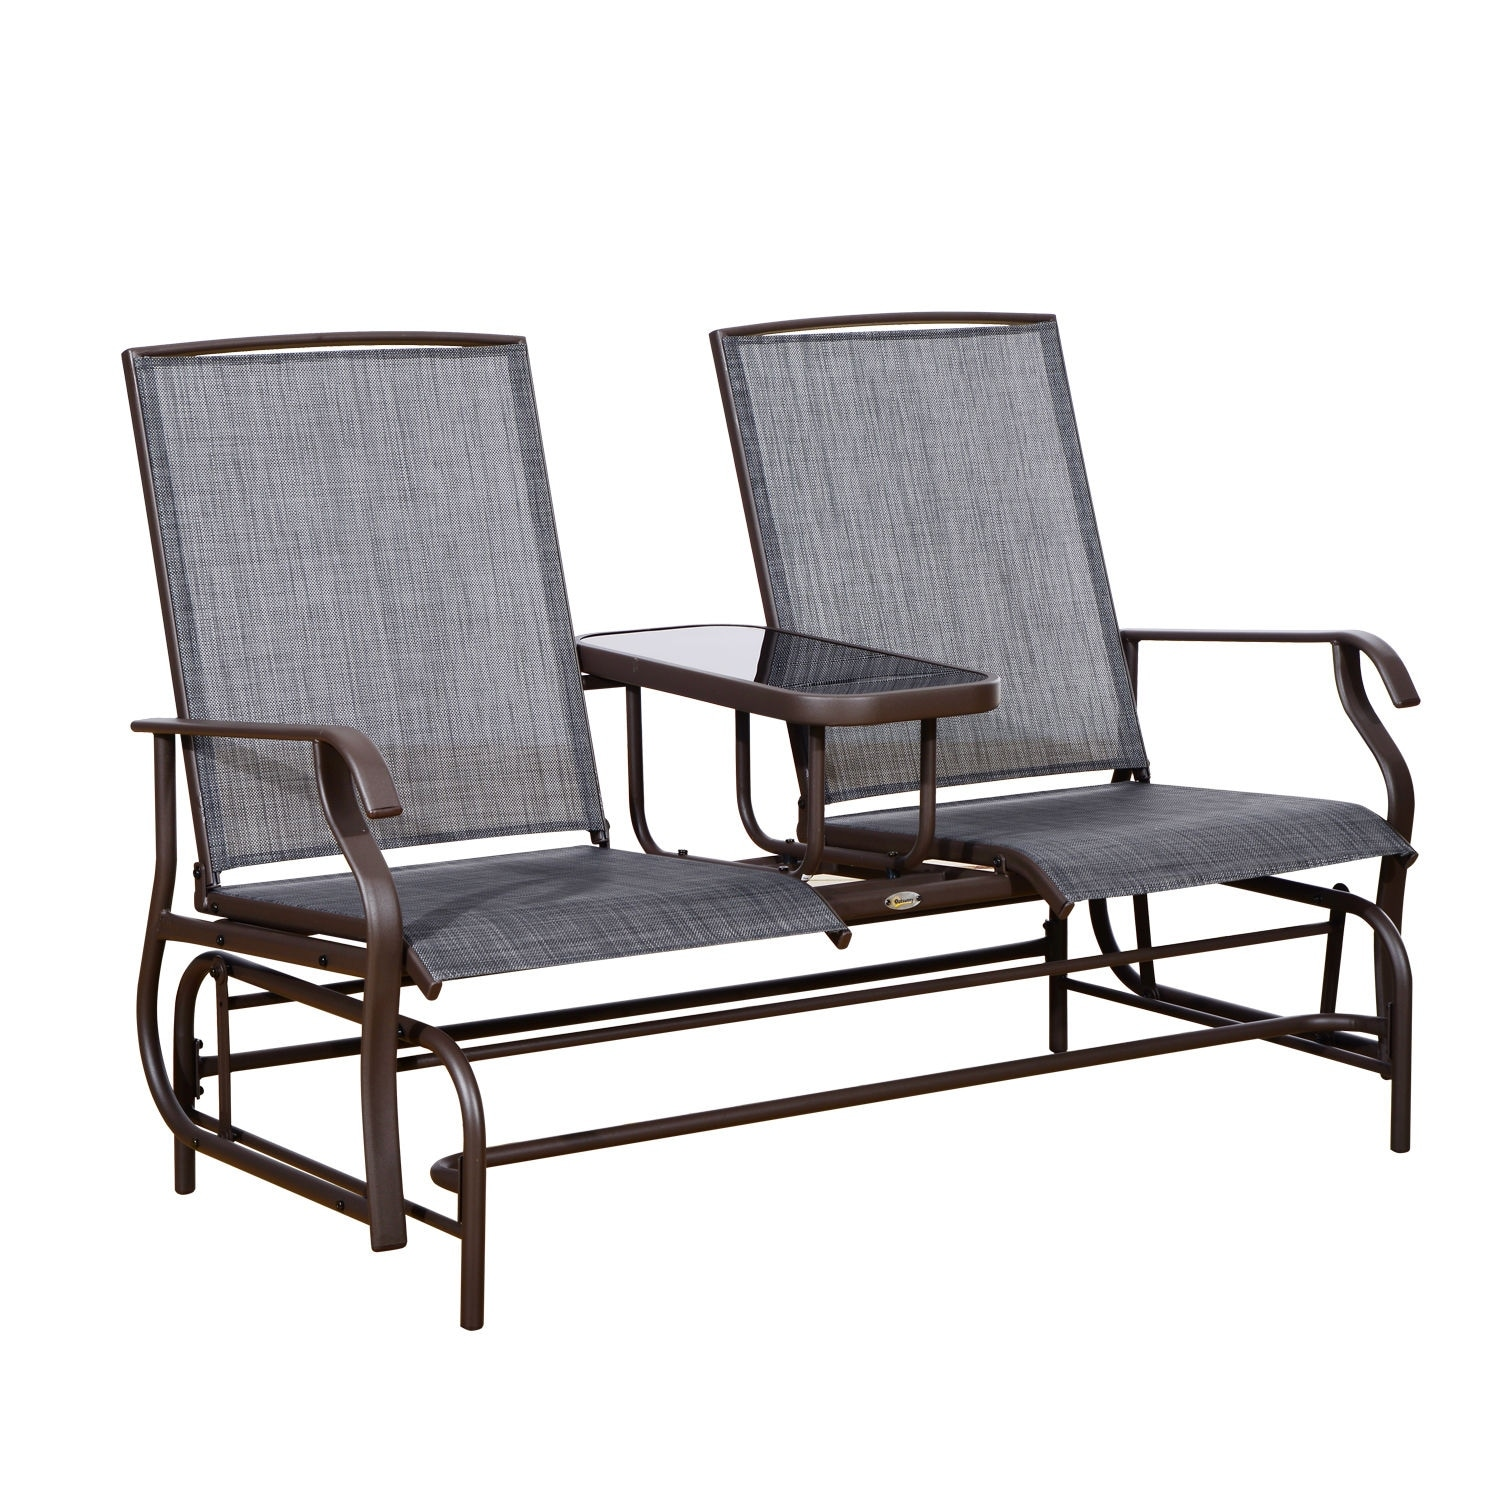 Outsunny Two Person Outdoor Mesh Fabric Patio Double Glider Chair With Center Table On Sale Overstock 18013207